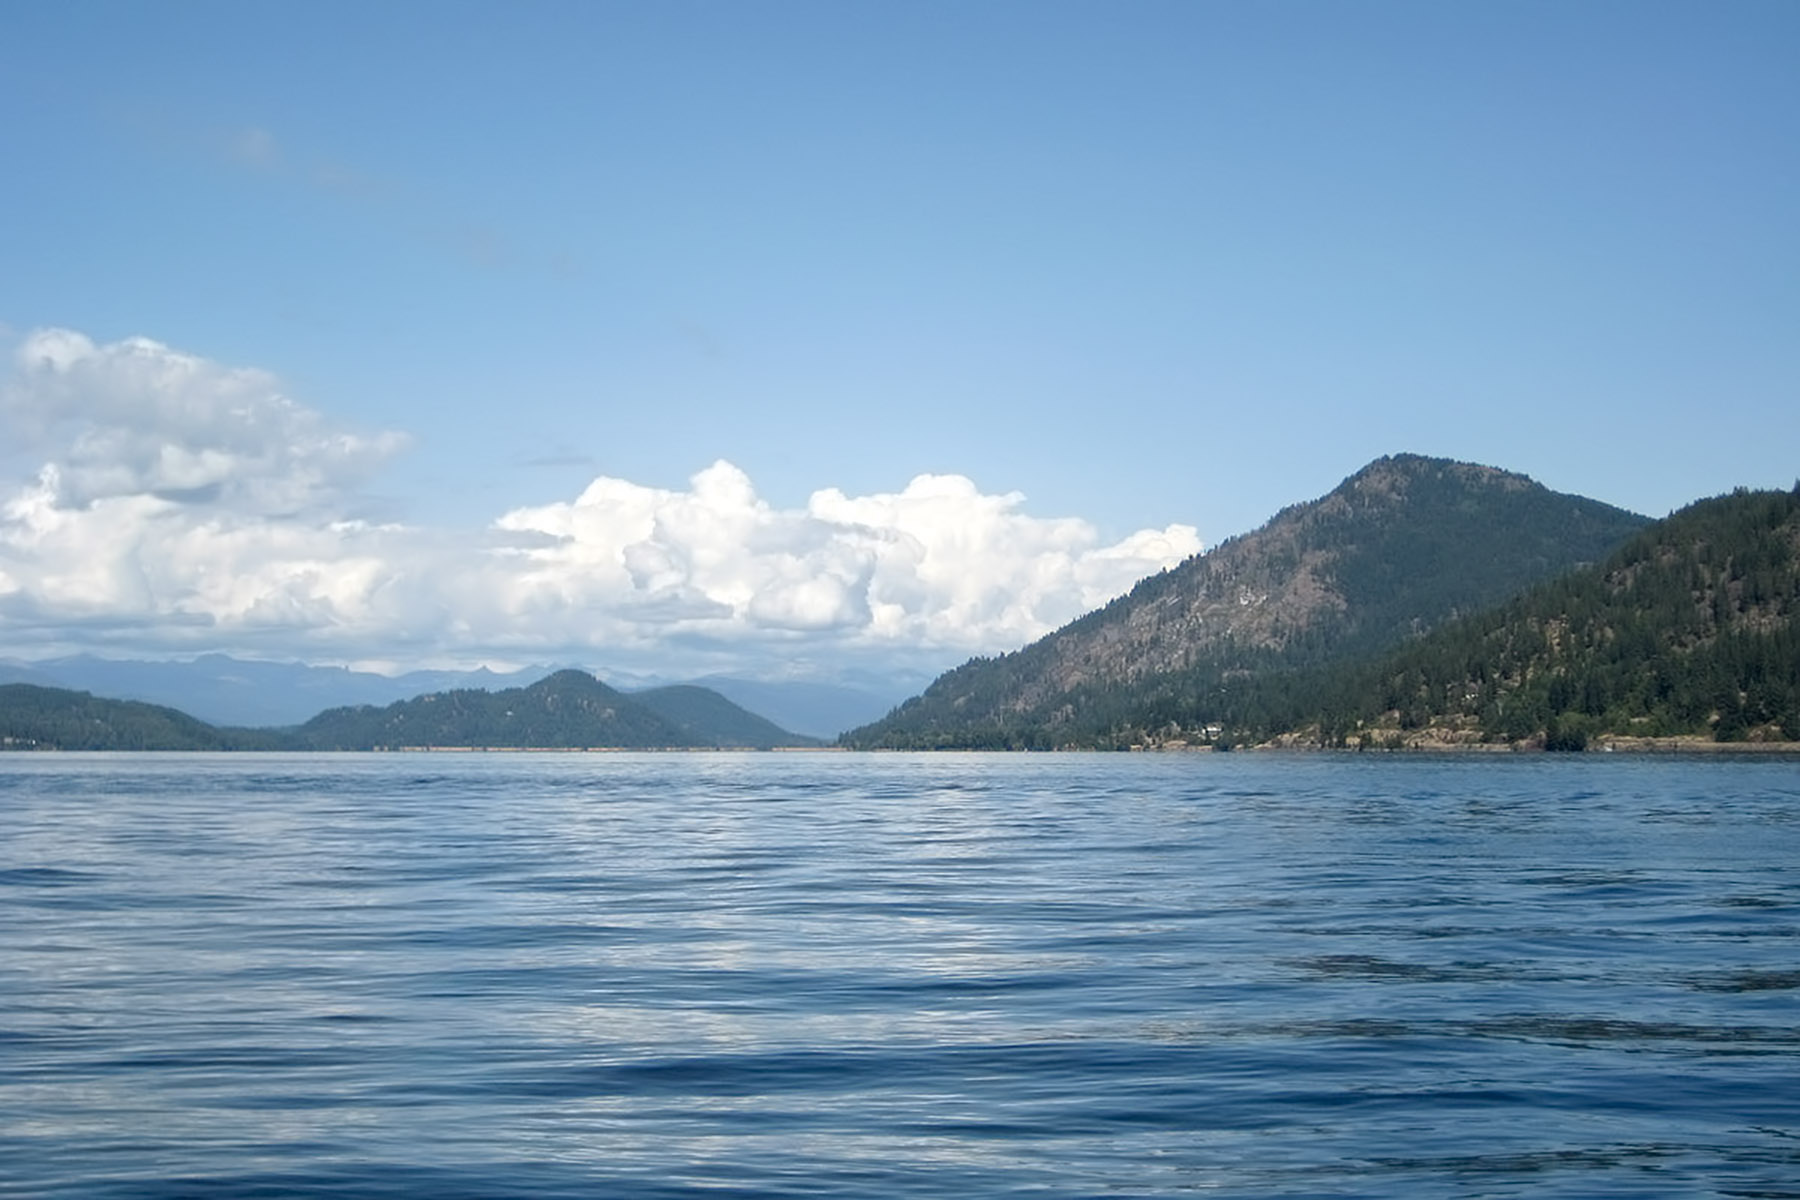 Land for Sale at Island Living on Lake Pend Oreille Lots 2 & 3 Warren Island Hope, Idaho, 83836 United States